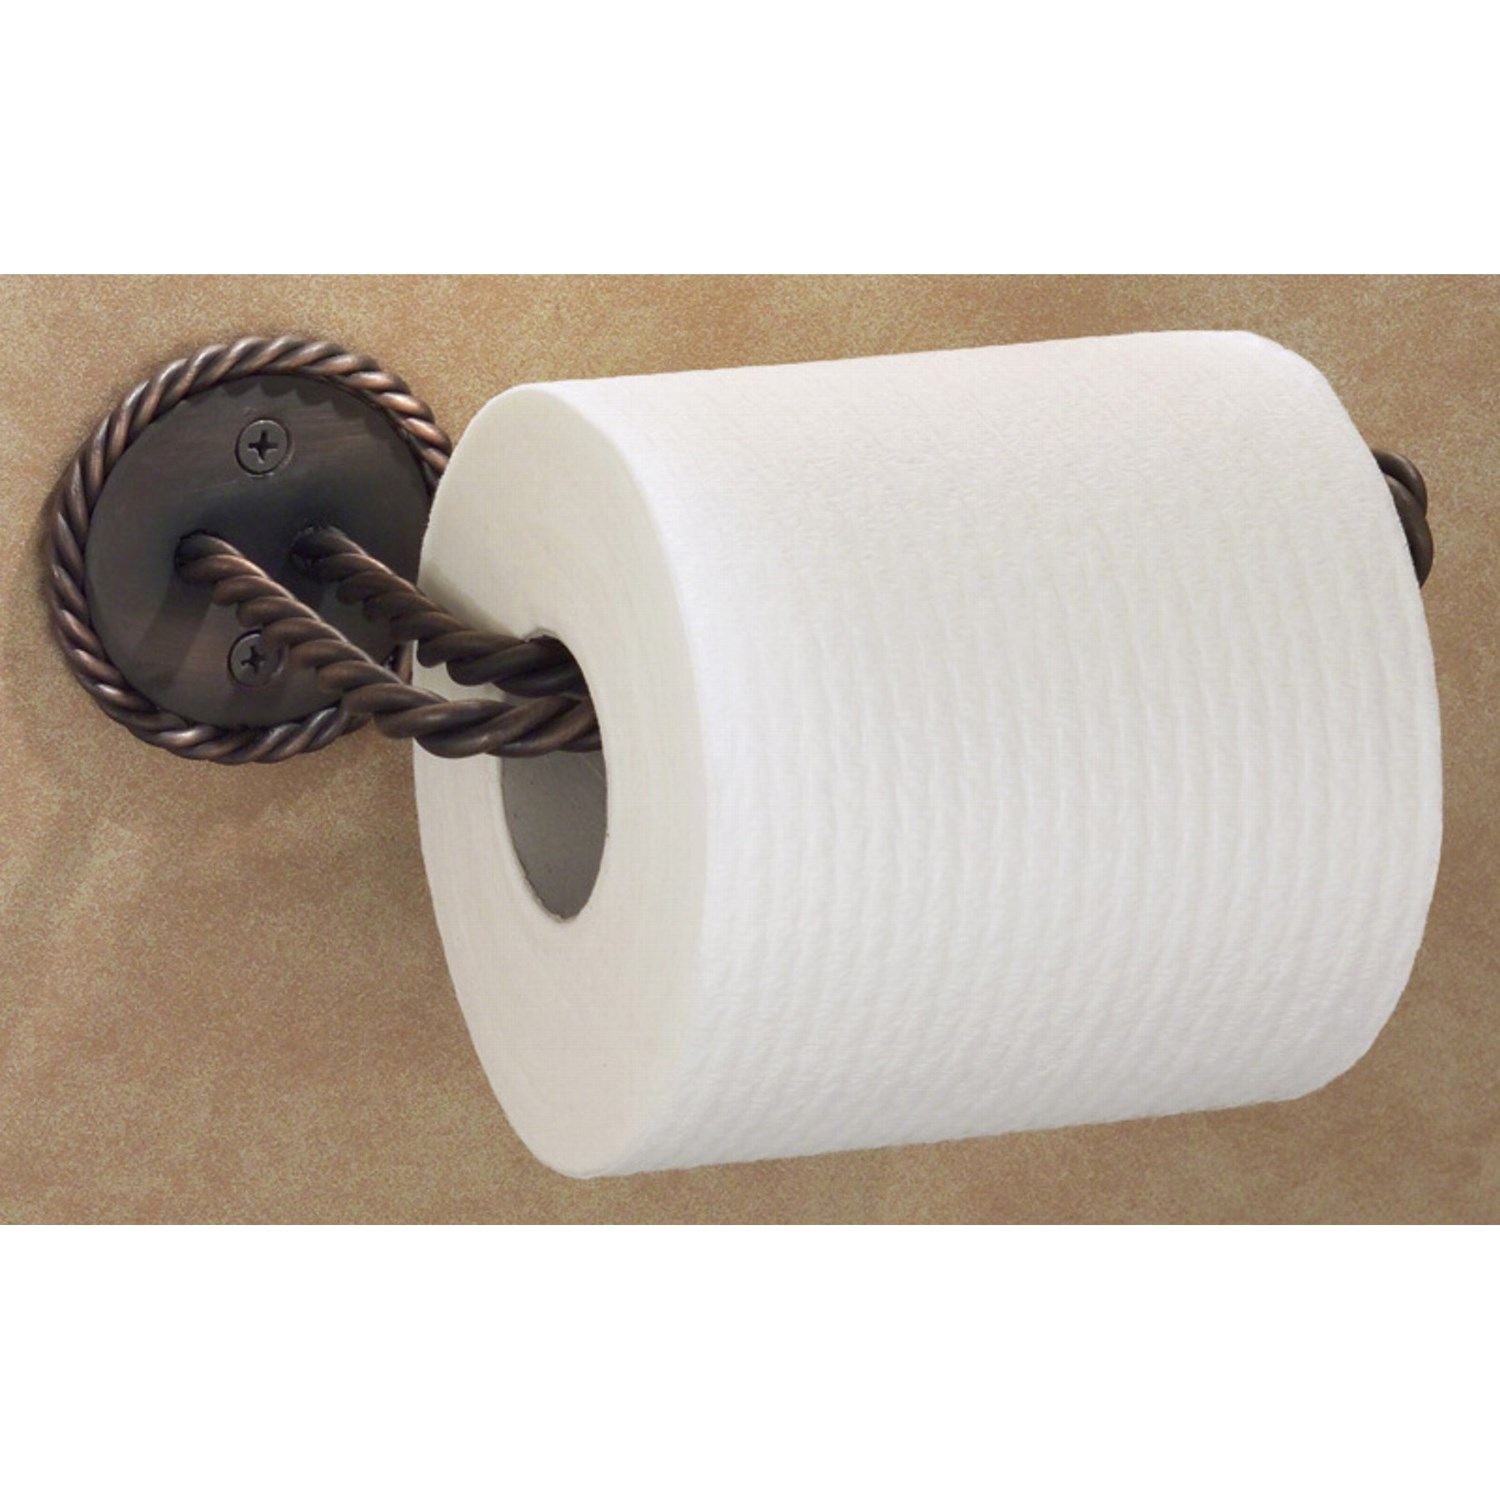 Interdesign toilet paper holder verona bath collection for Design your own toilet paper